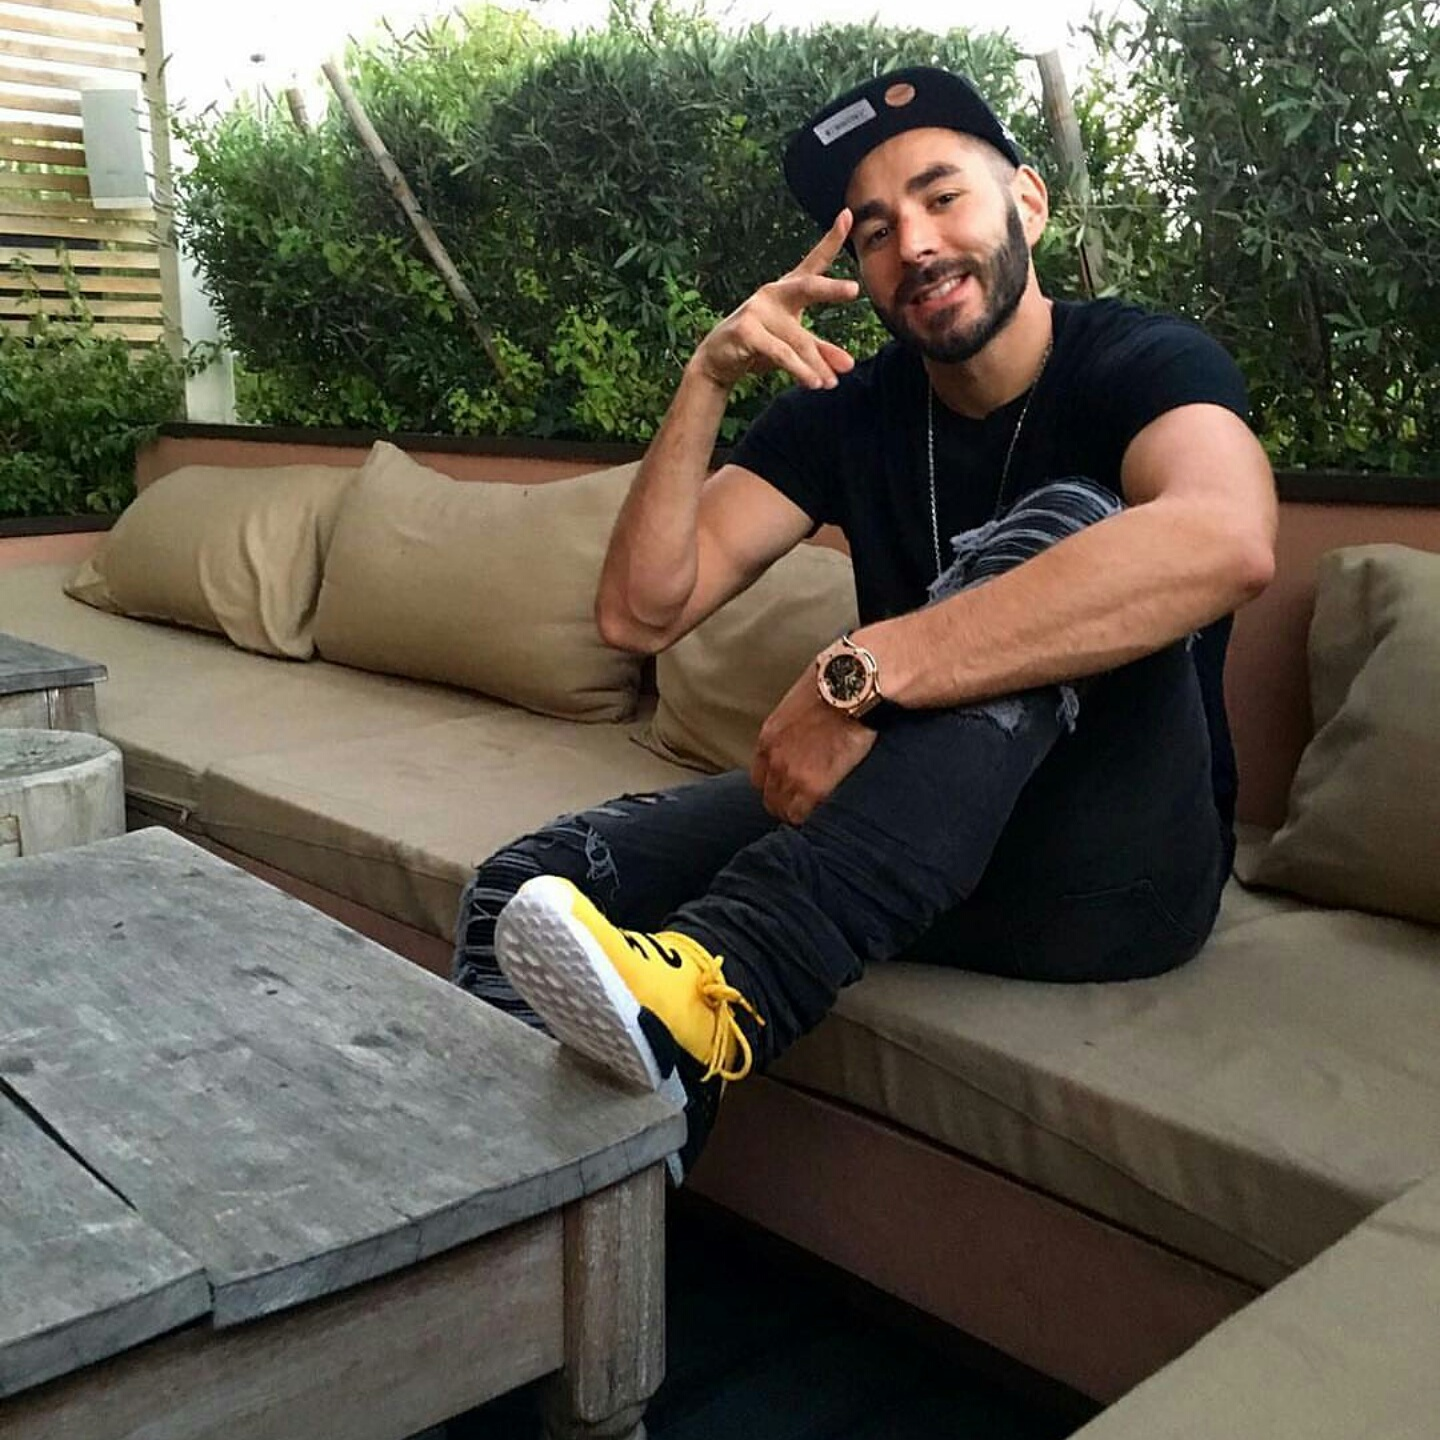 STYLE: Karim Benzema's Instagram Mike Amiri Jeans &  Pharrell x Adidas NMD Human Race Sneakers